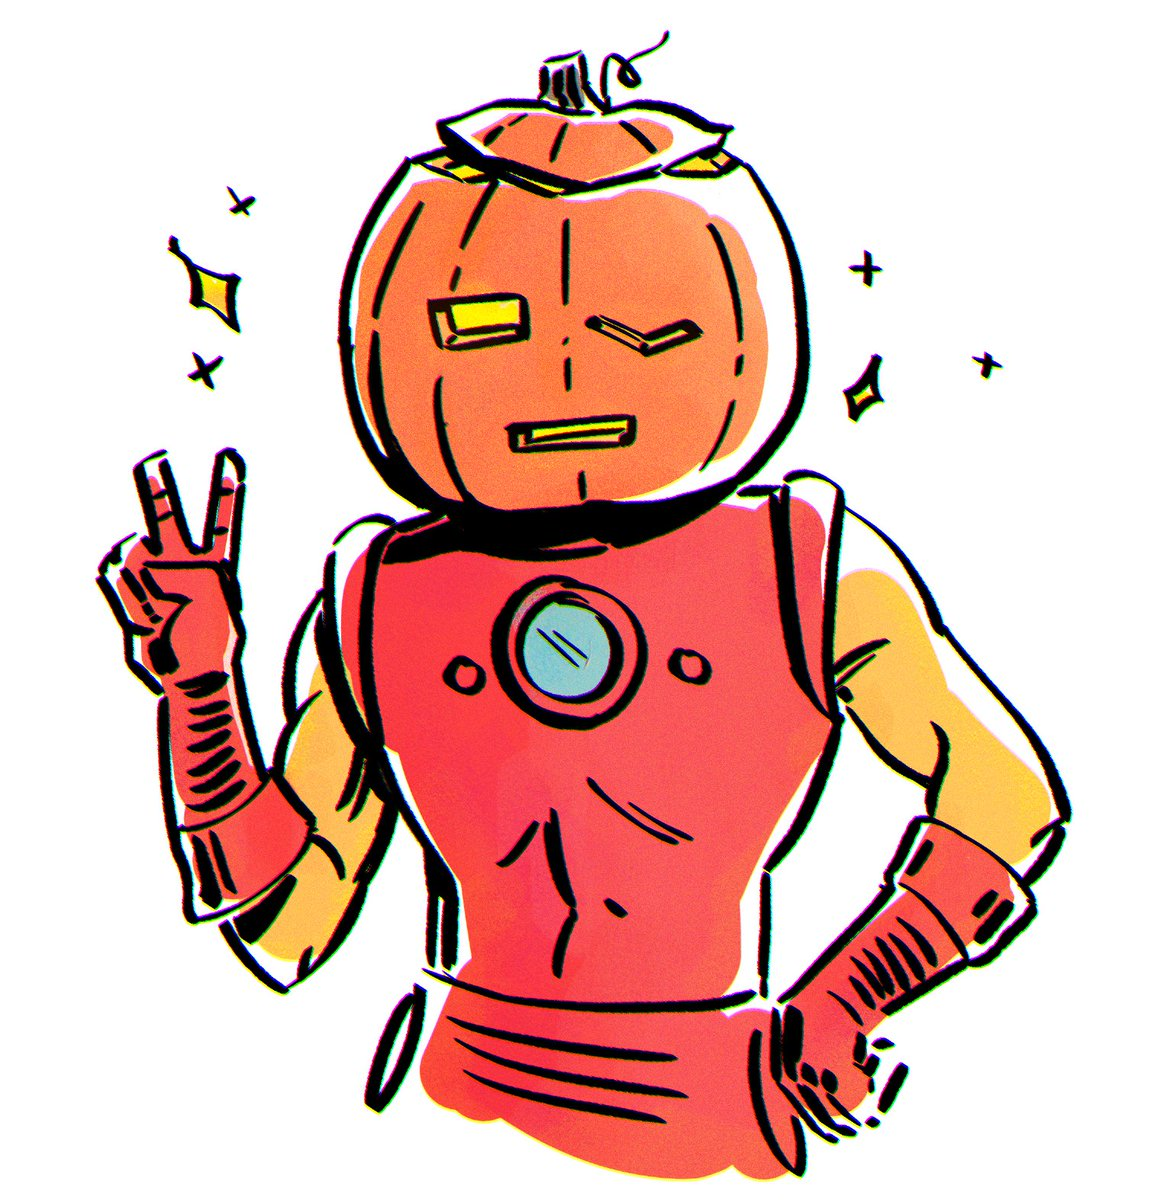 🎃happiest of spooks from ur local iron man🎃